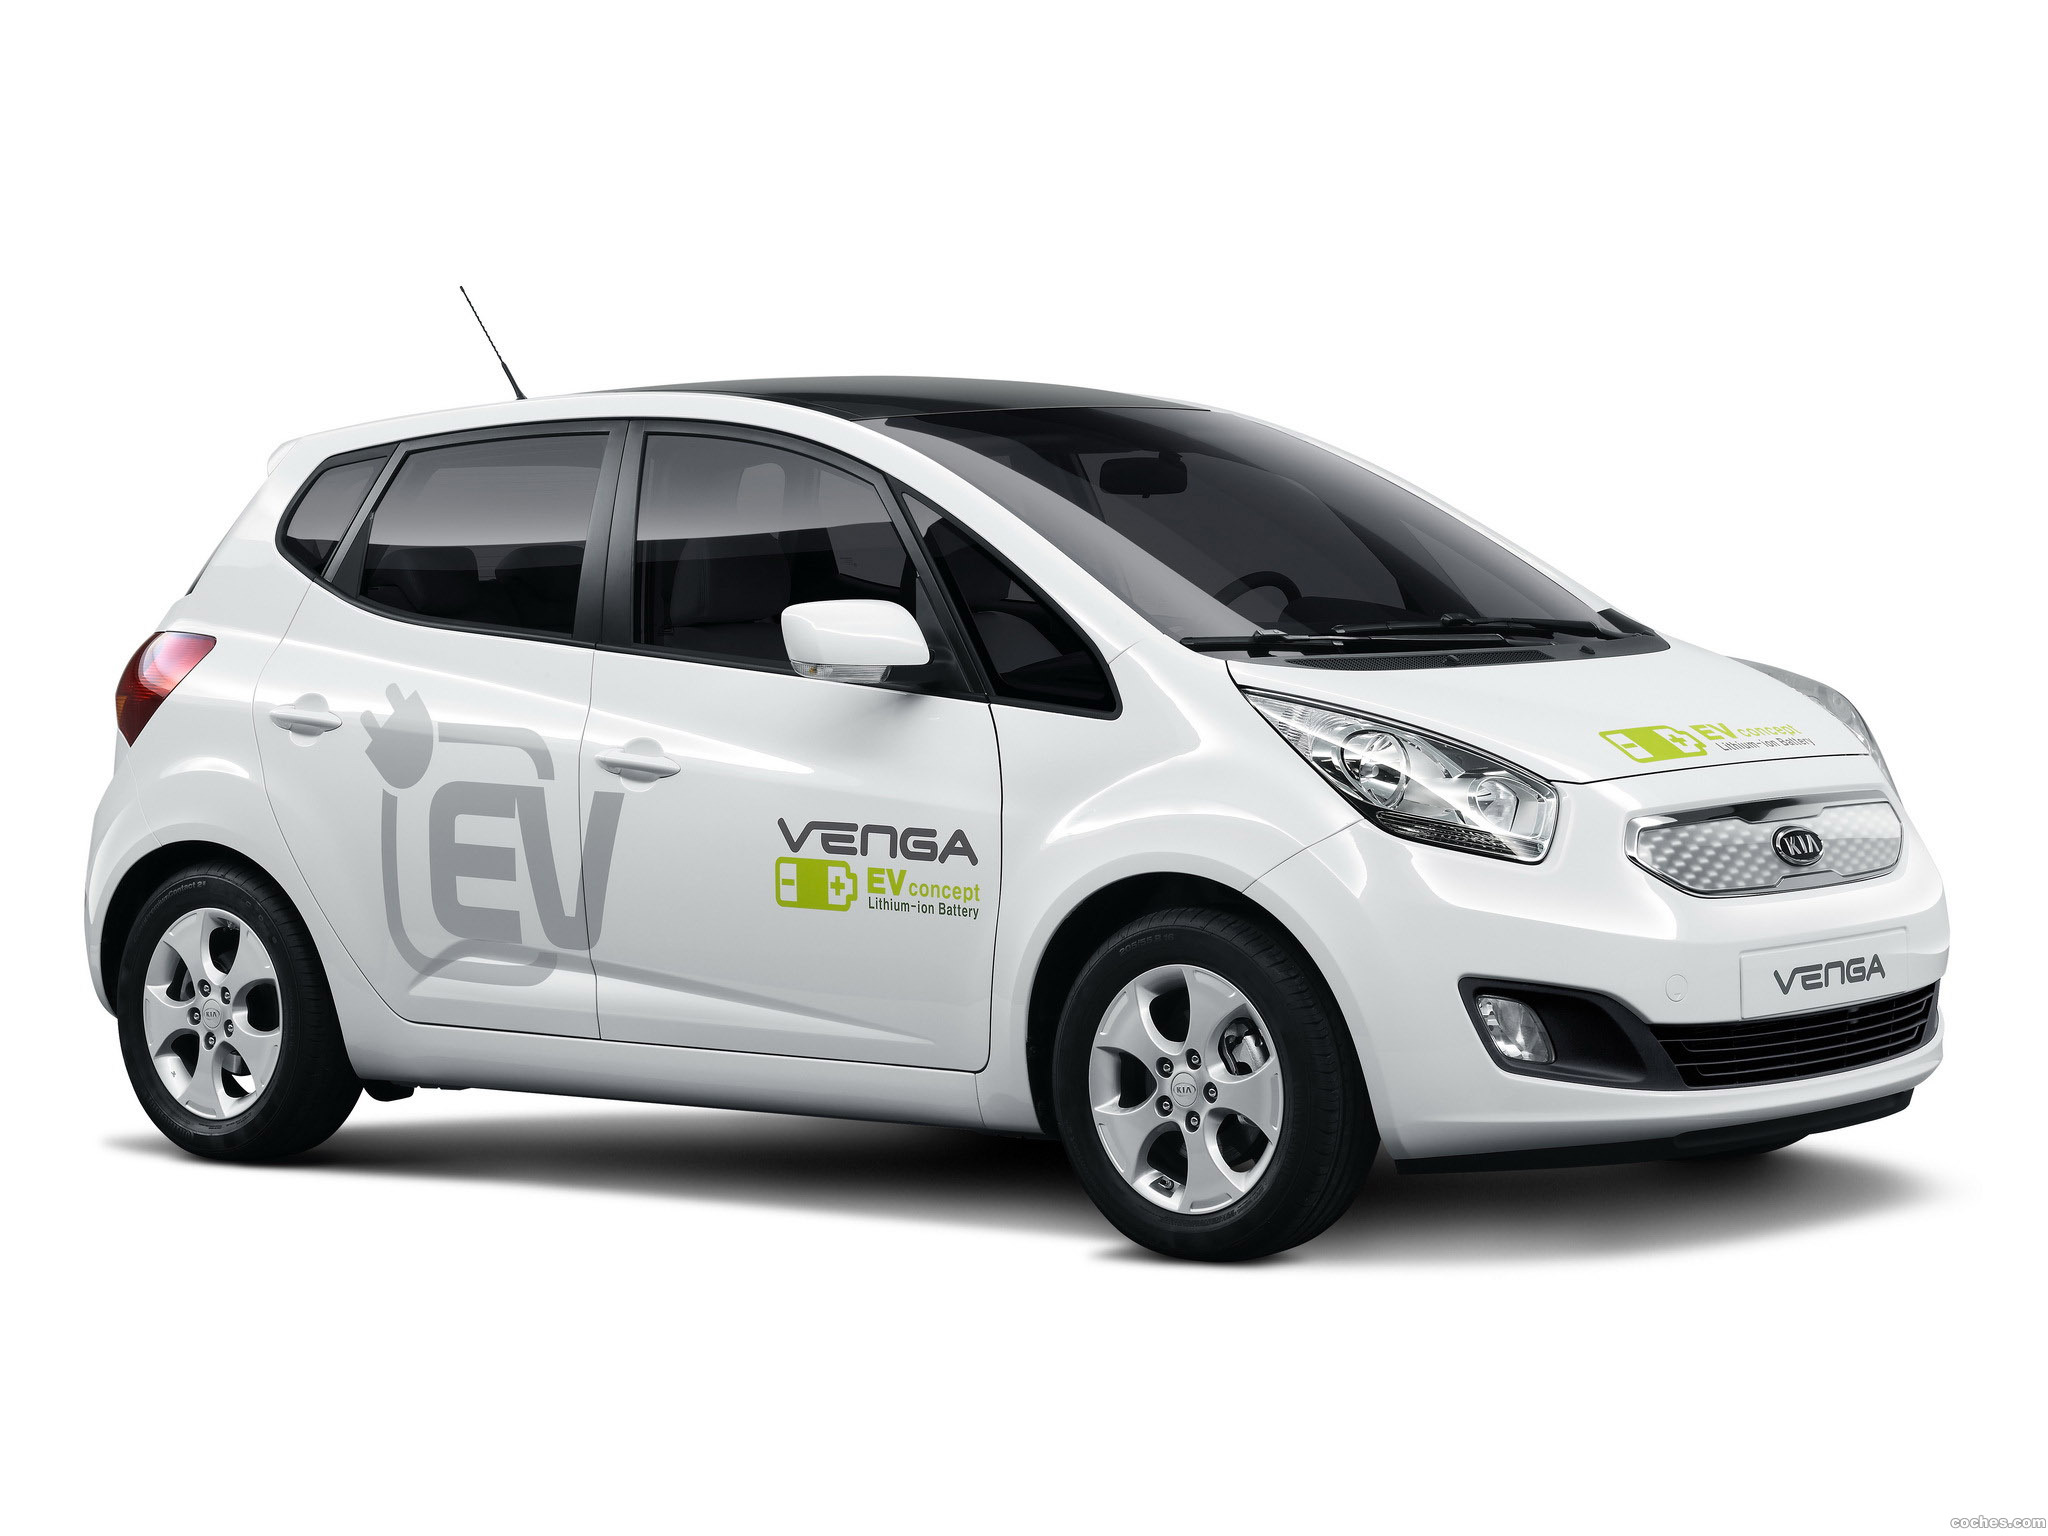 kia_venga-plug-in-electric-concept-2010_r9